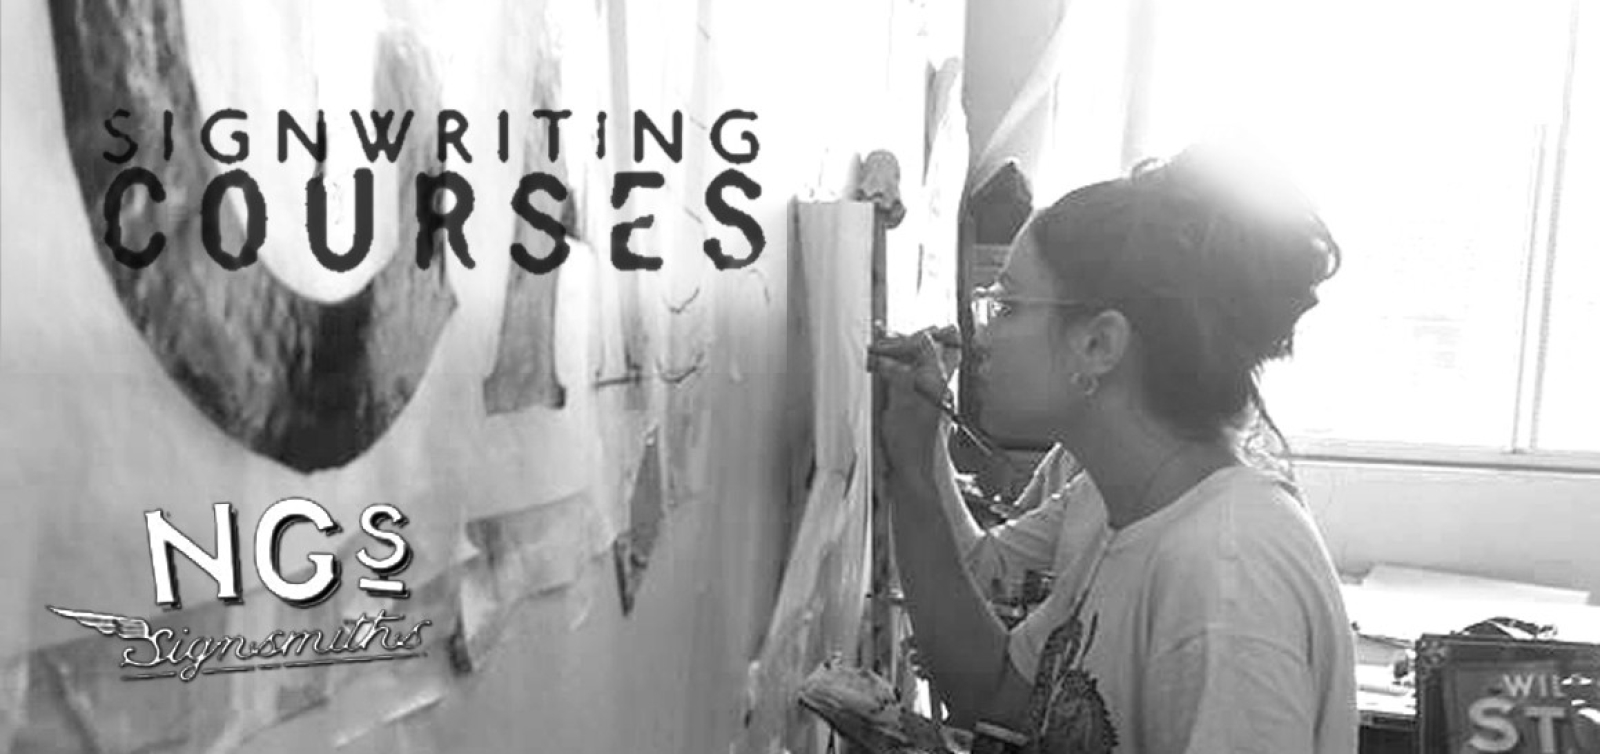 signsmiths-courses-ngs-london-italy-sign-painter